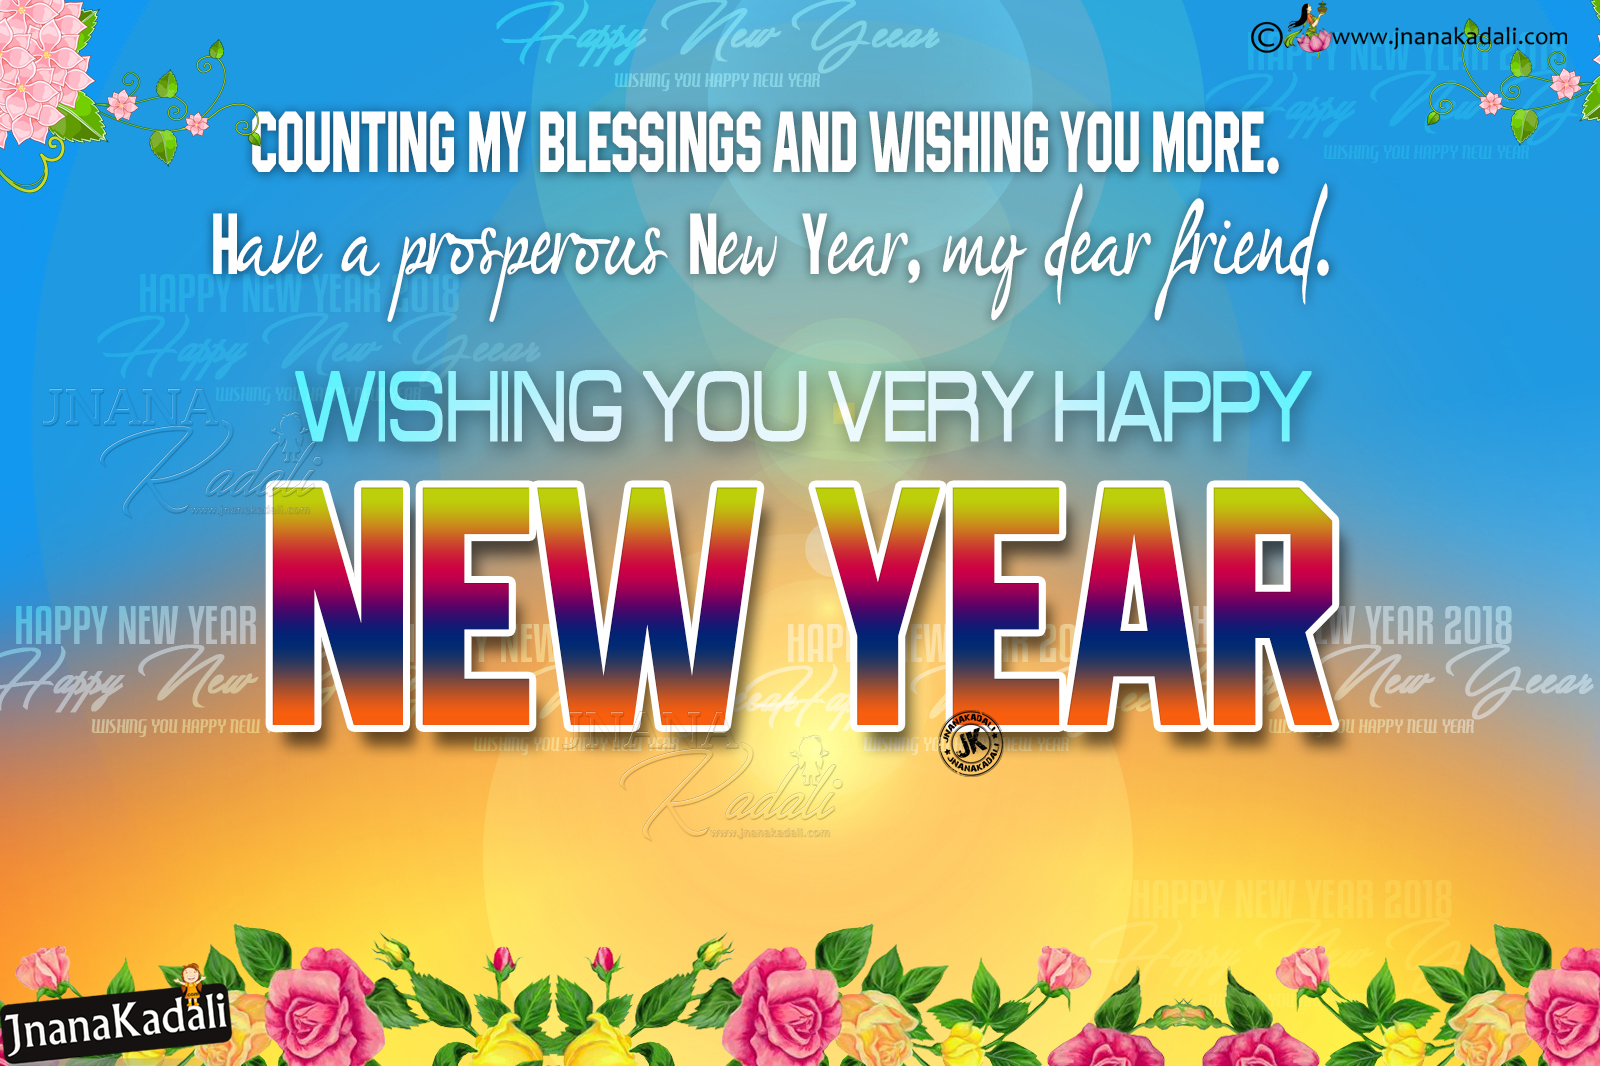 Advanced 2018 New Year Greetings With Hd Wallpapers Free Download In